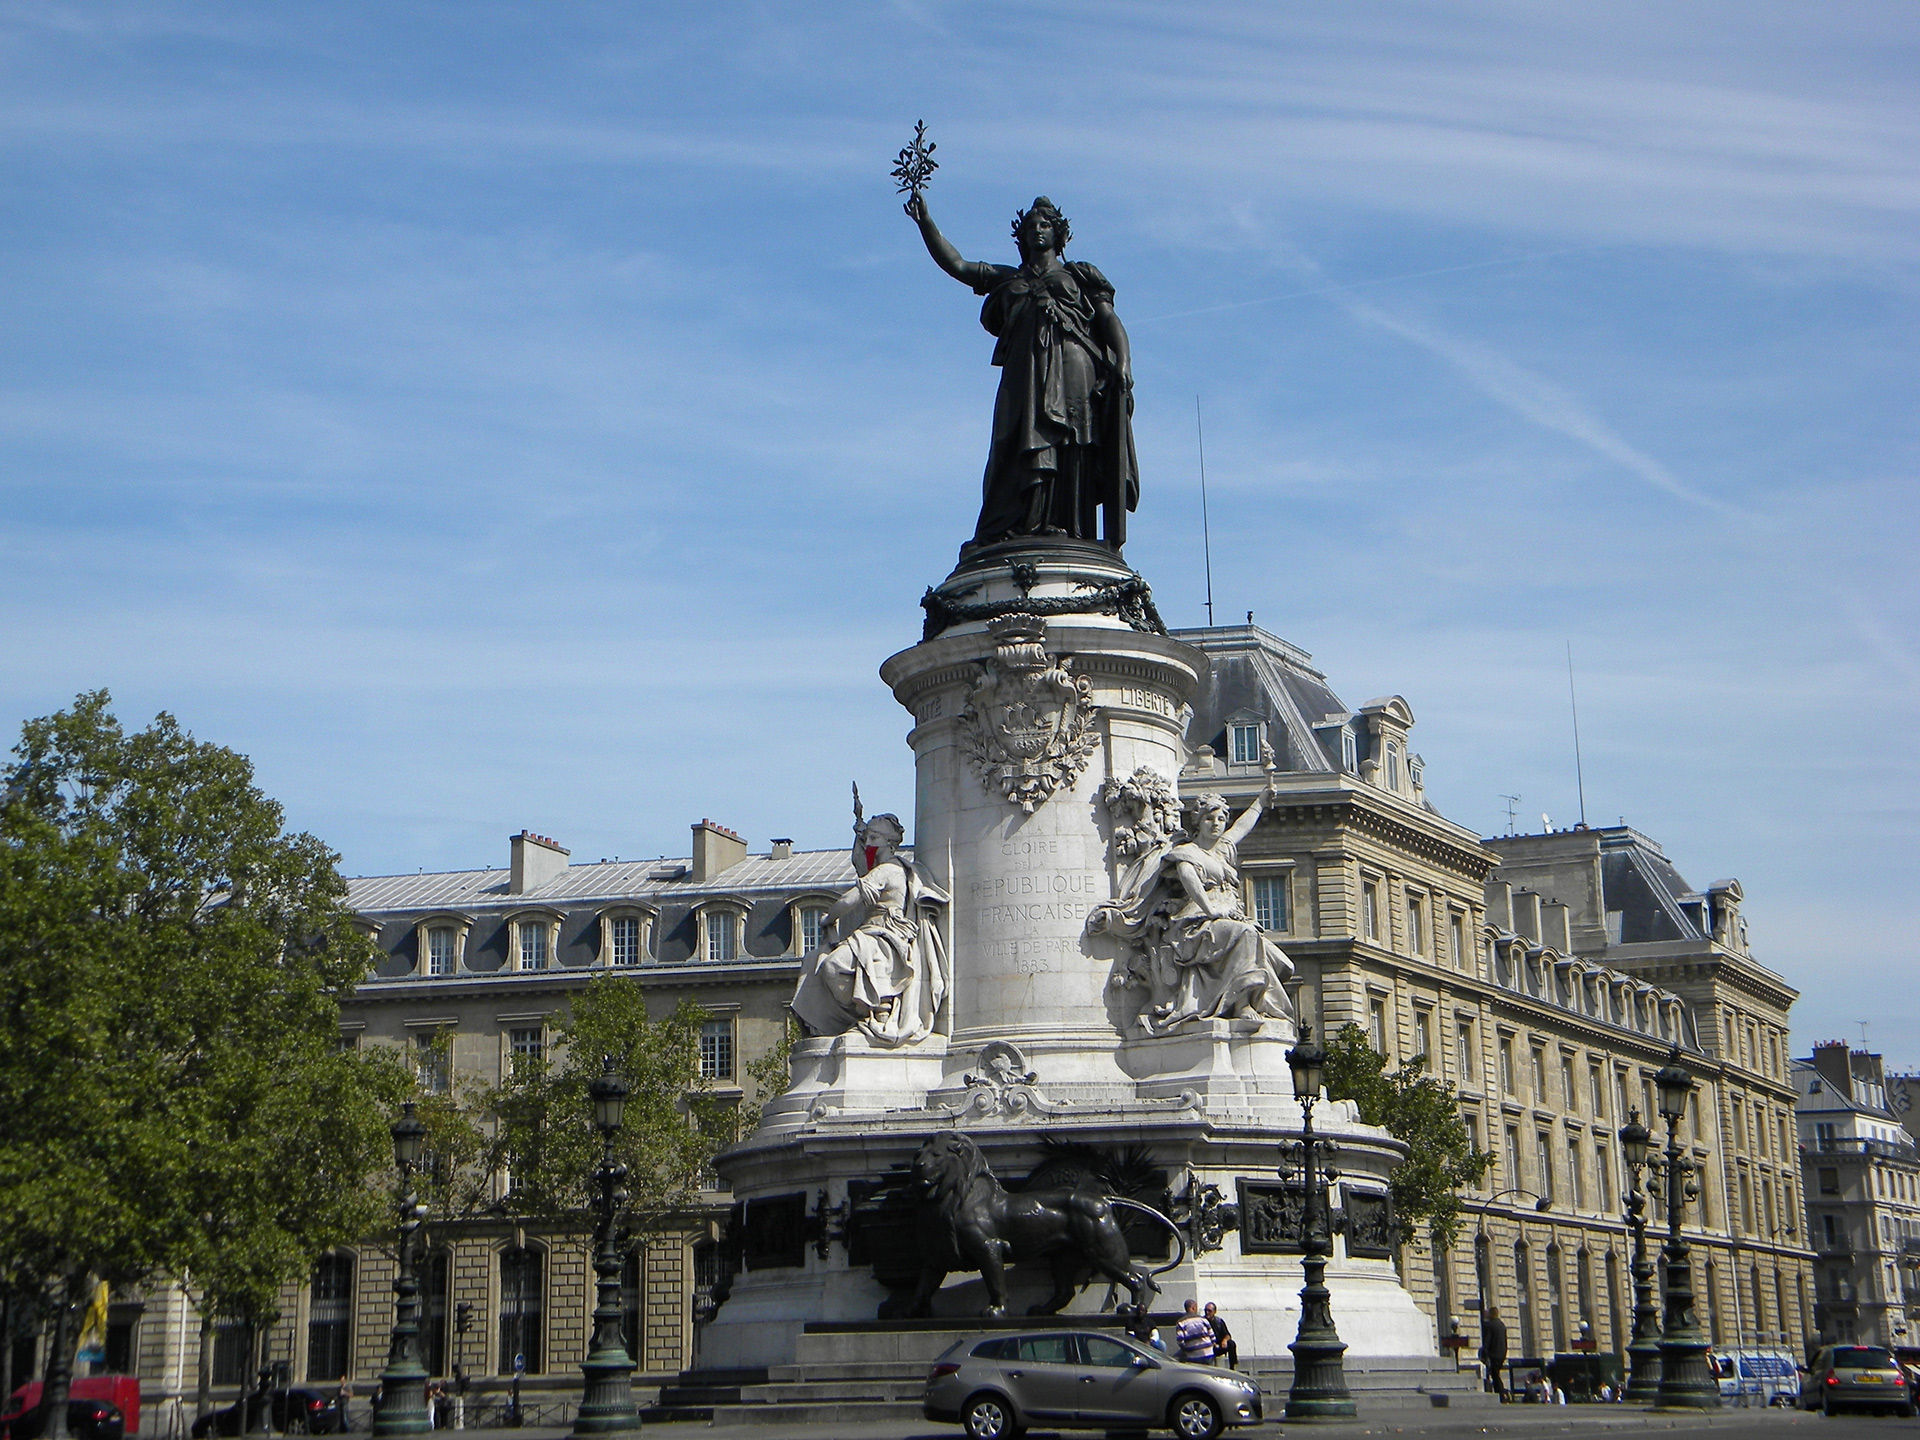 168/Photos/Quartier_ldd/Place_de_la_Republique_Monument_for_Gloire_de_la_Republique_Francaise_2-optimisee.jpg